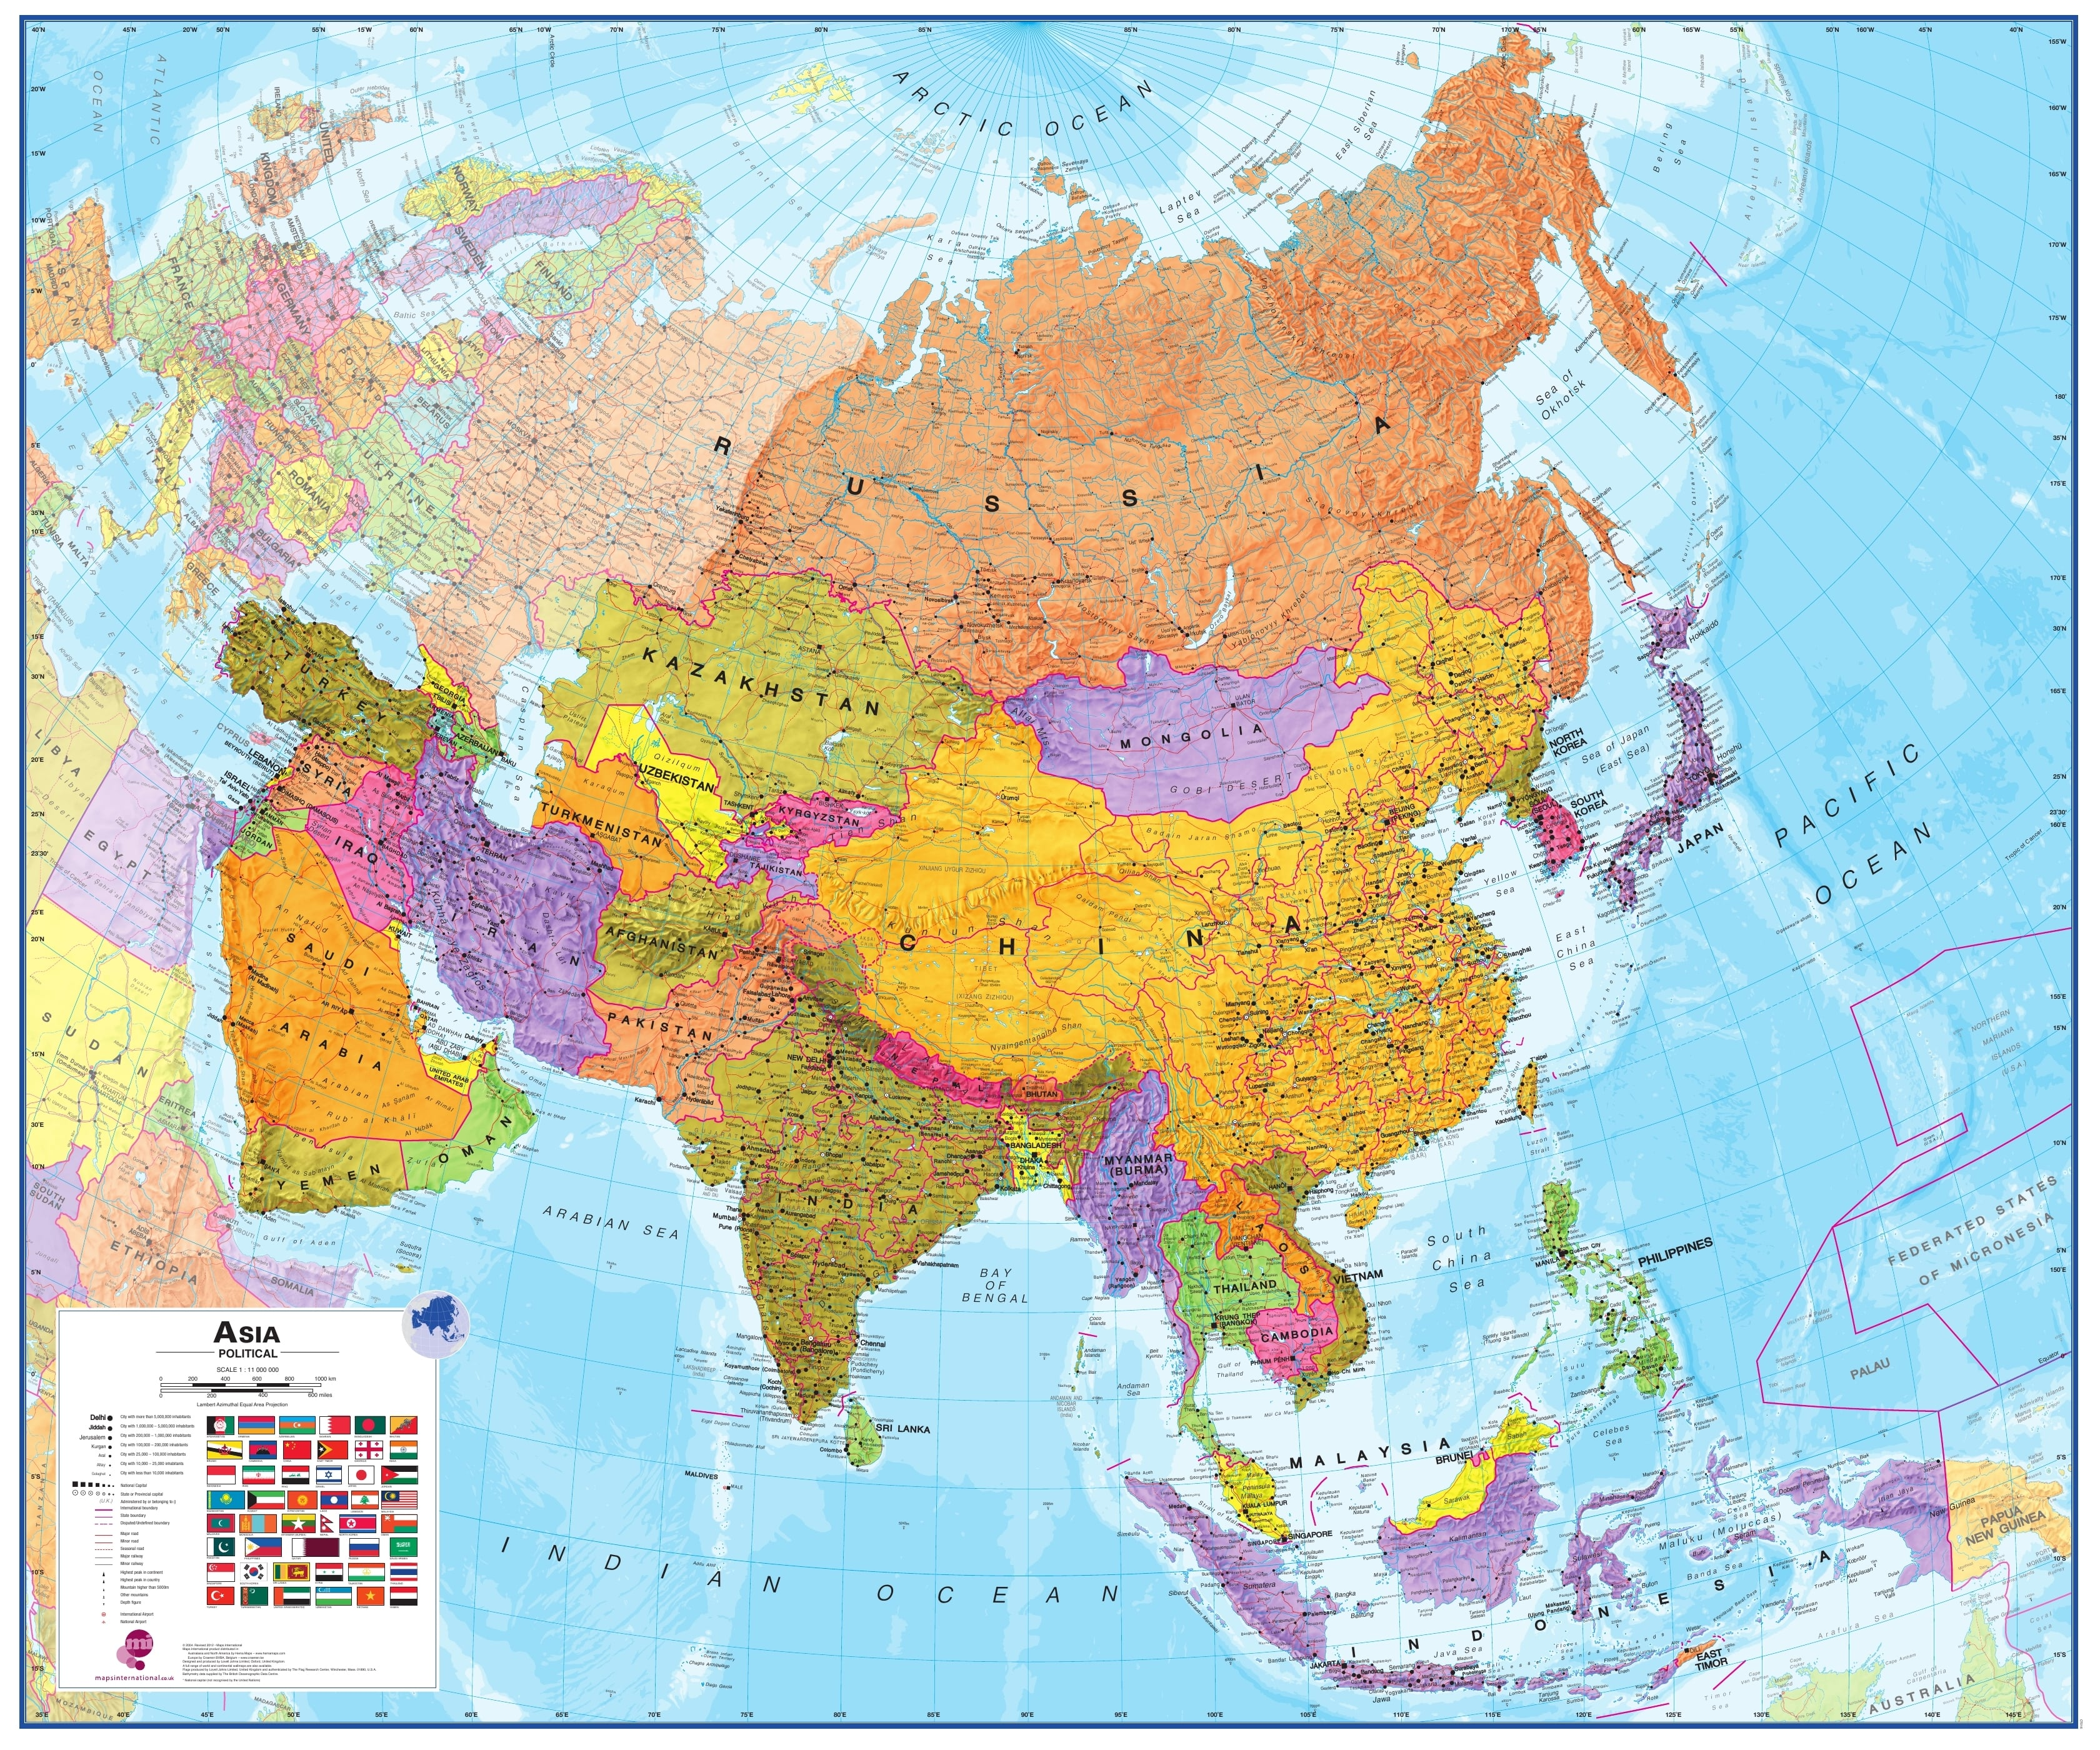 Map Of Asia Hd Image.Political Asia Wall Map 120 X 100cm